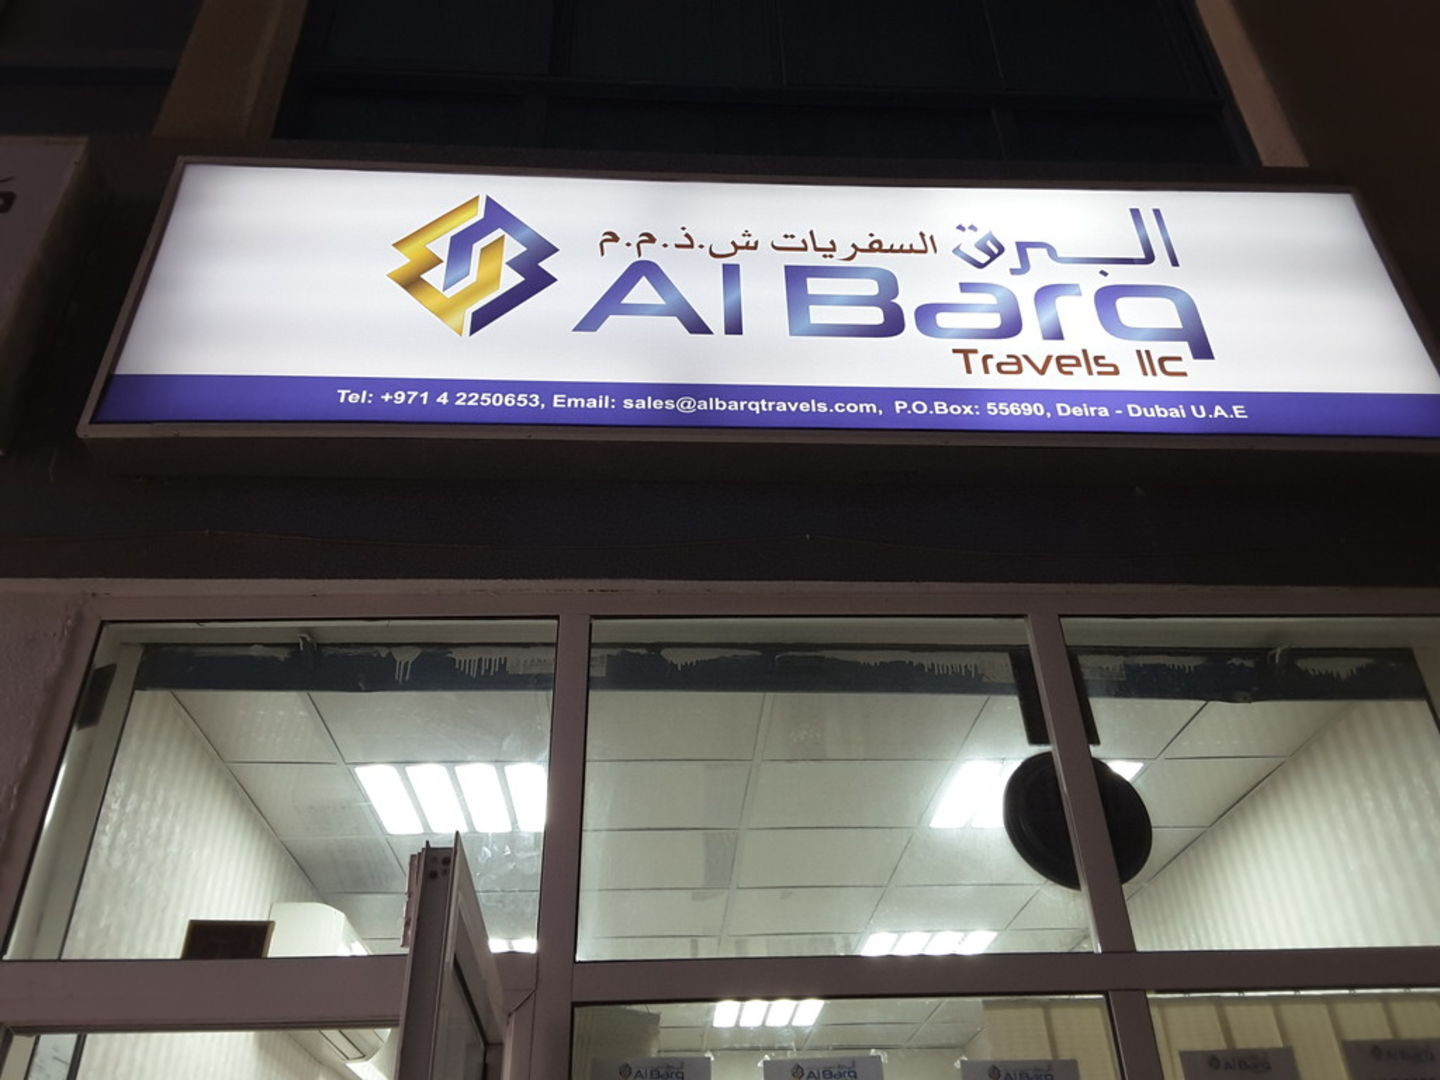 HiDubai-business-al-barq-travels-hotels-tourism-local-tours-activities-naif-dubai-2